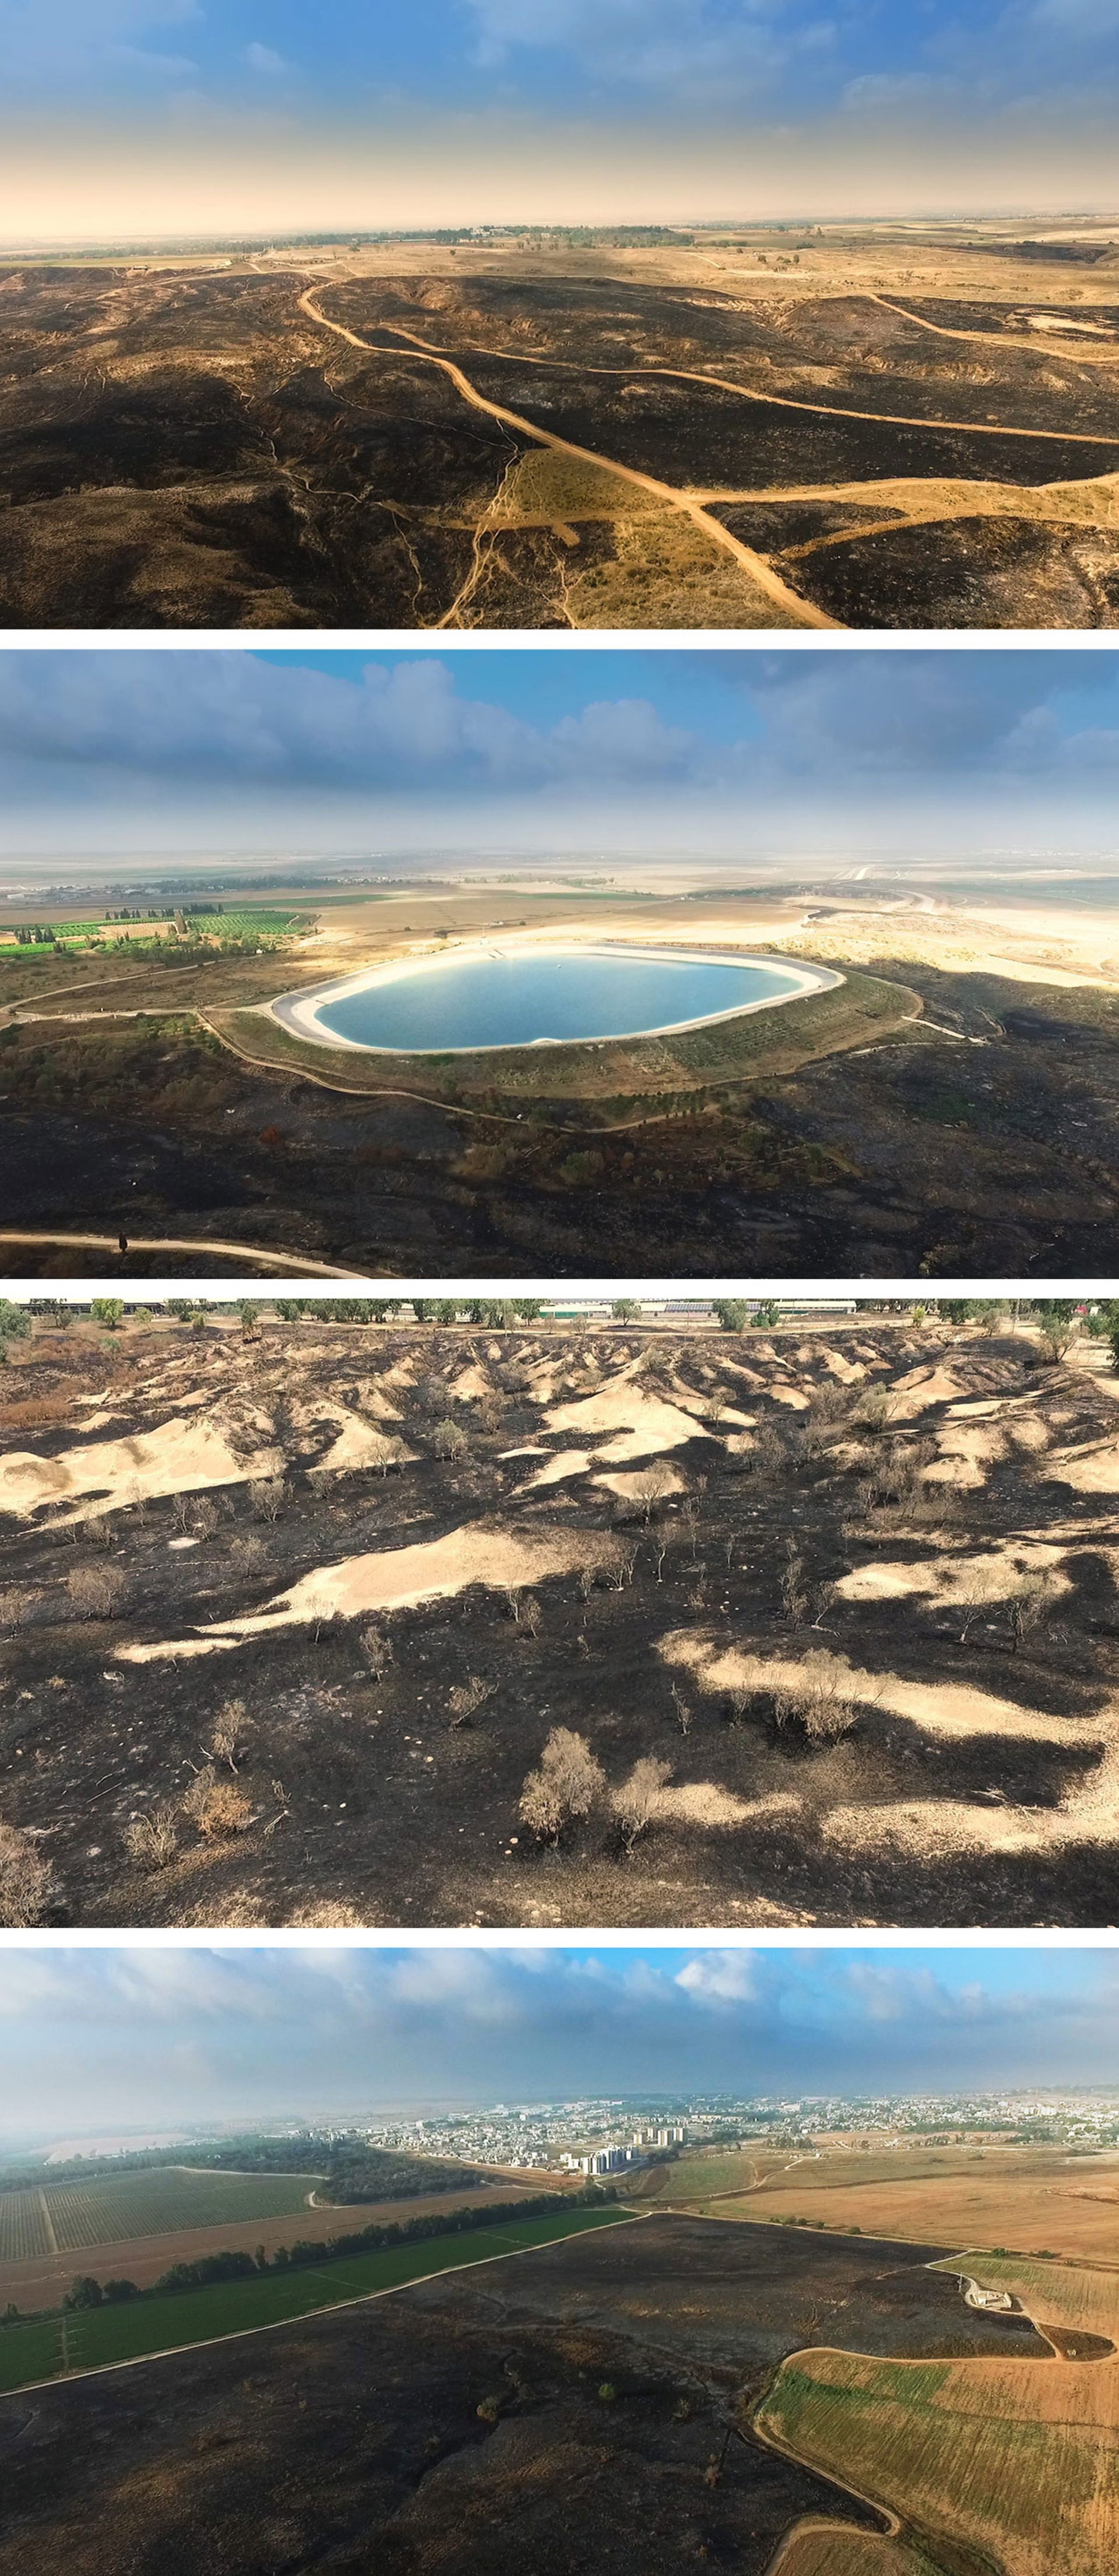 Clockwise from top left: The Be'eri Crater, blackened by fire, the reservoir adjacent to Kibbutz Nir Am, surrounded by scorched fields, North of Sderot and Kissufim forest.